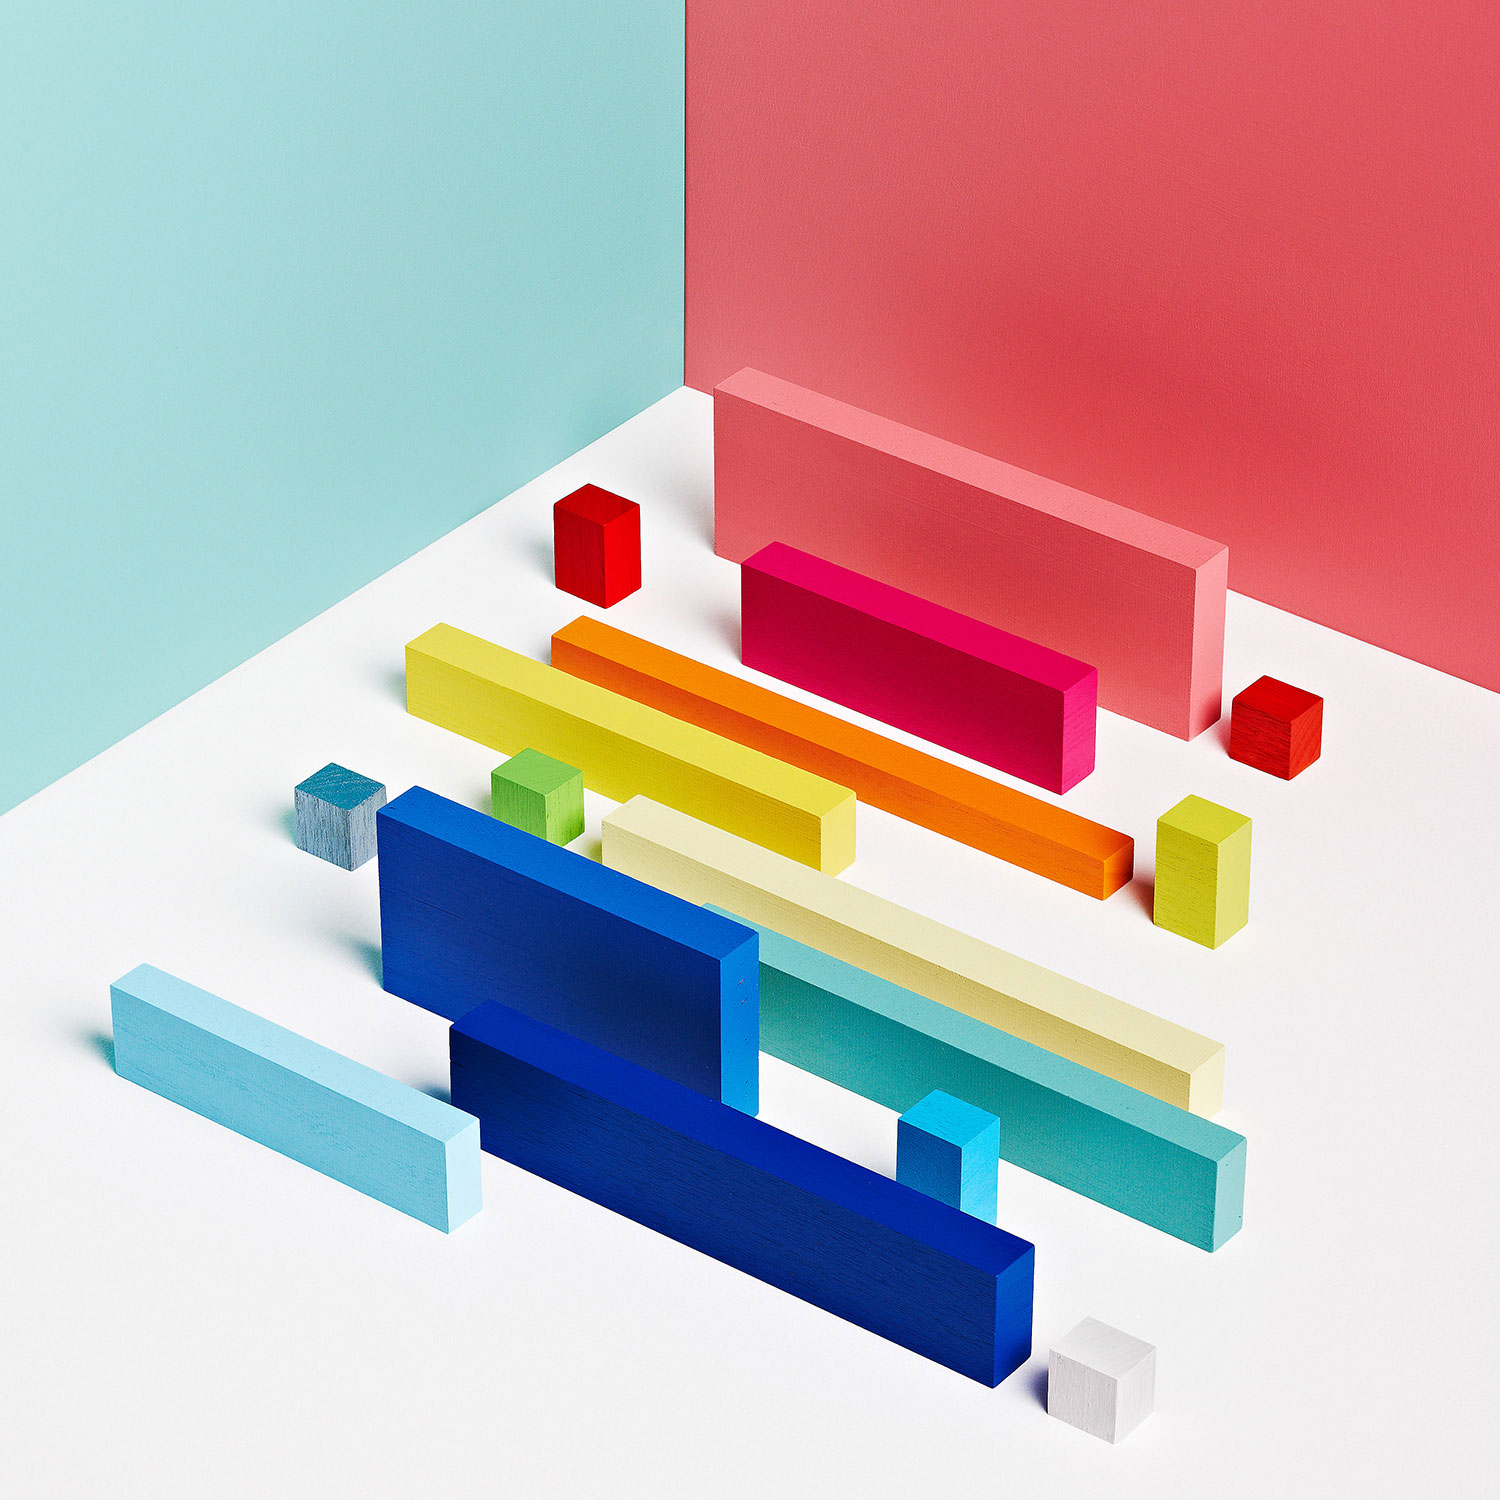 The Retro Visionaries Palette, Dulux Colour Forecast 2014 | Yellowtrace.